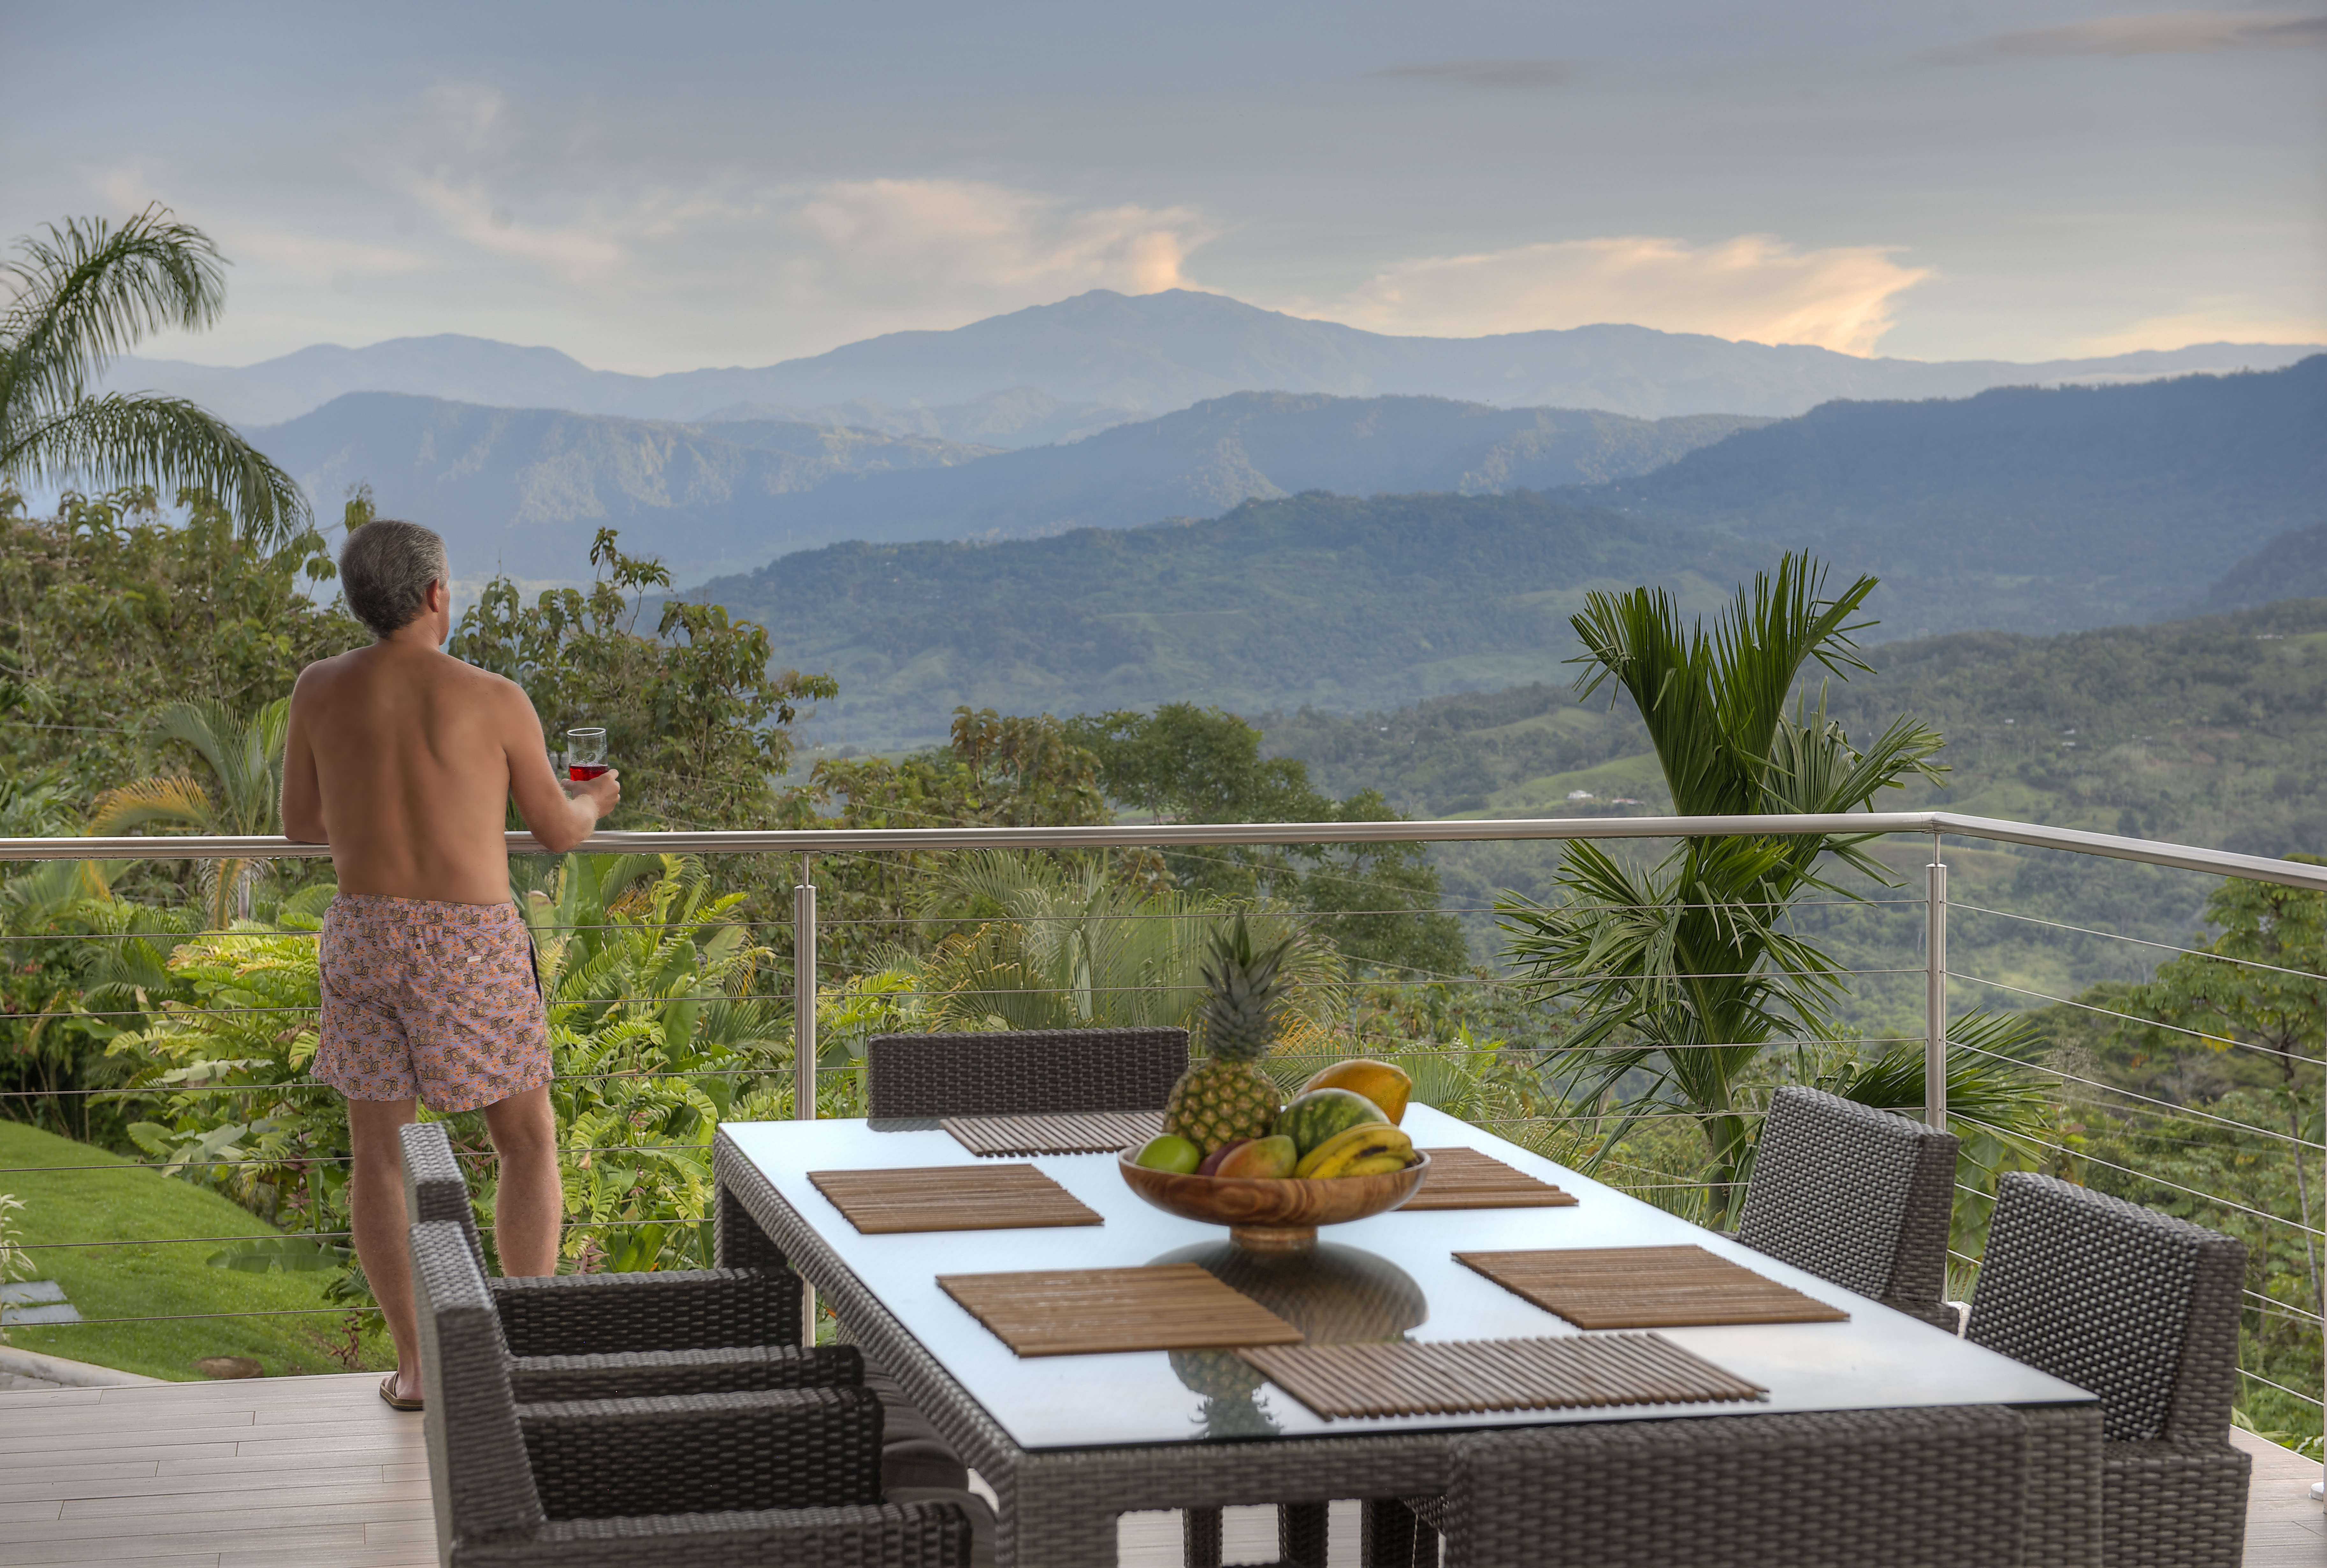 dulce pacifico homes forest views costa rica real estate for sale